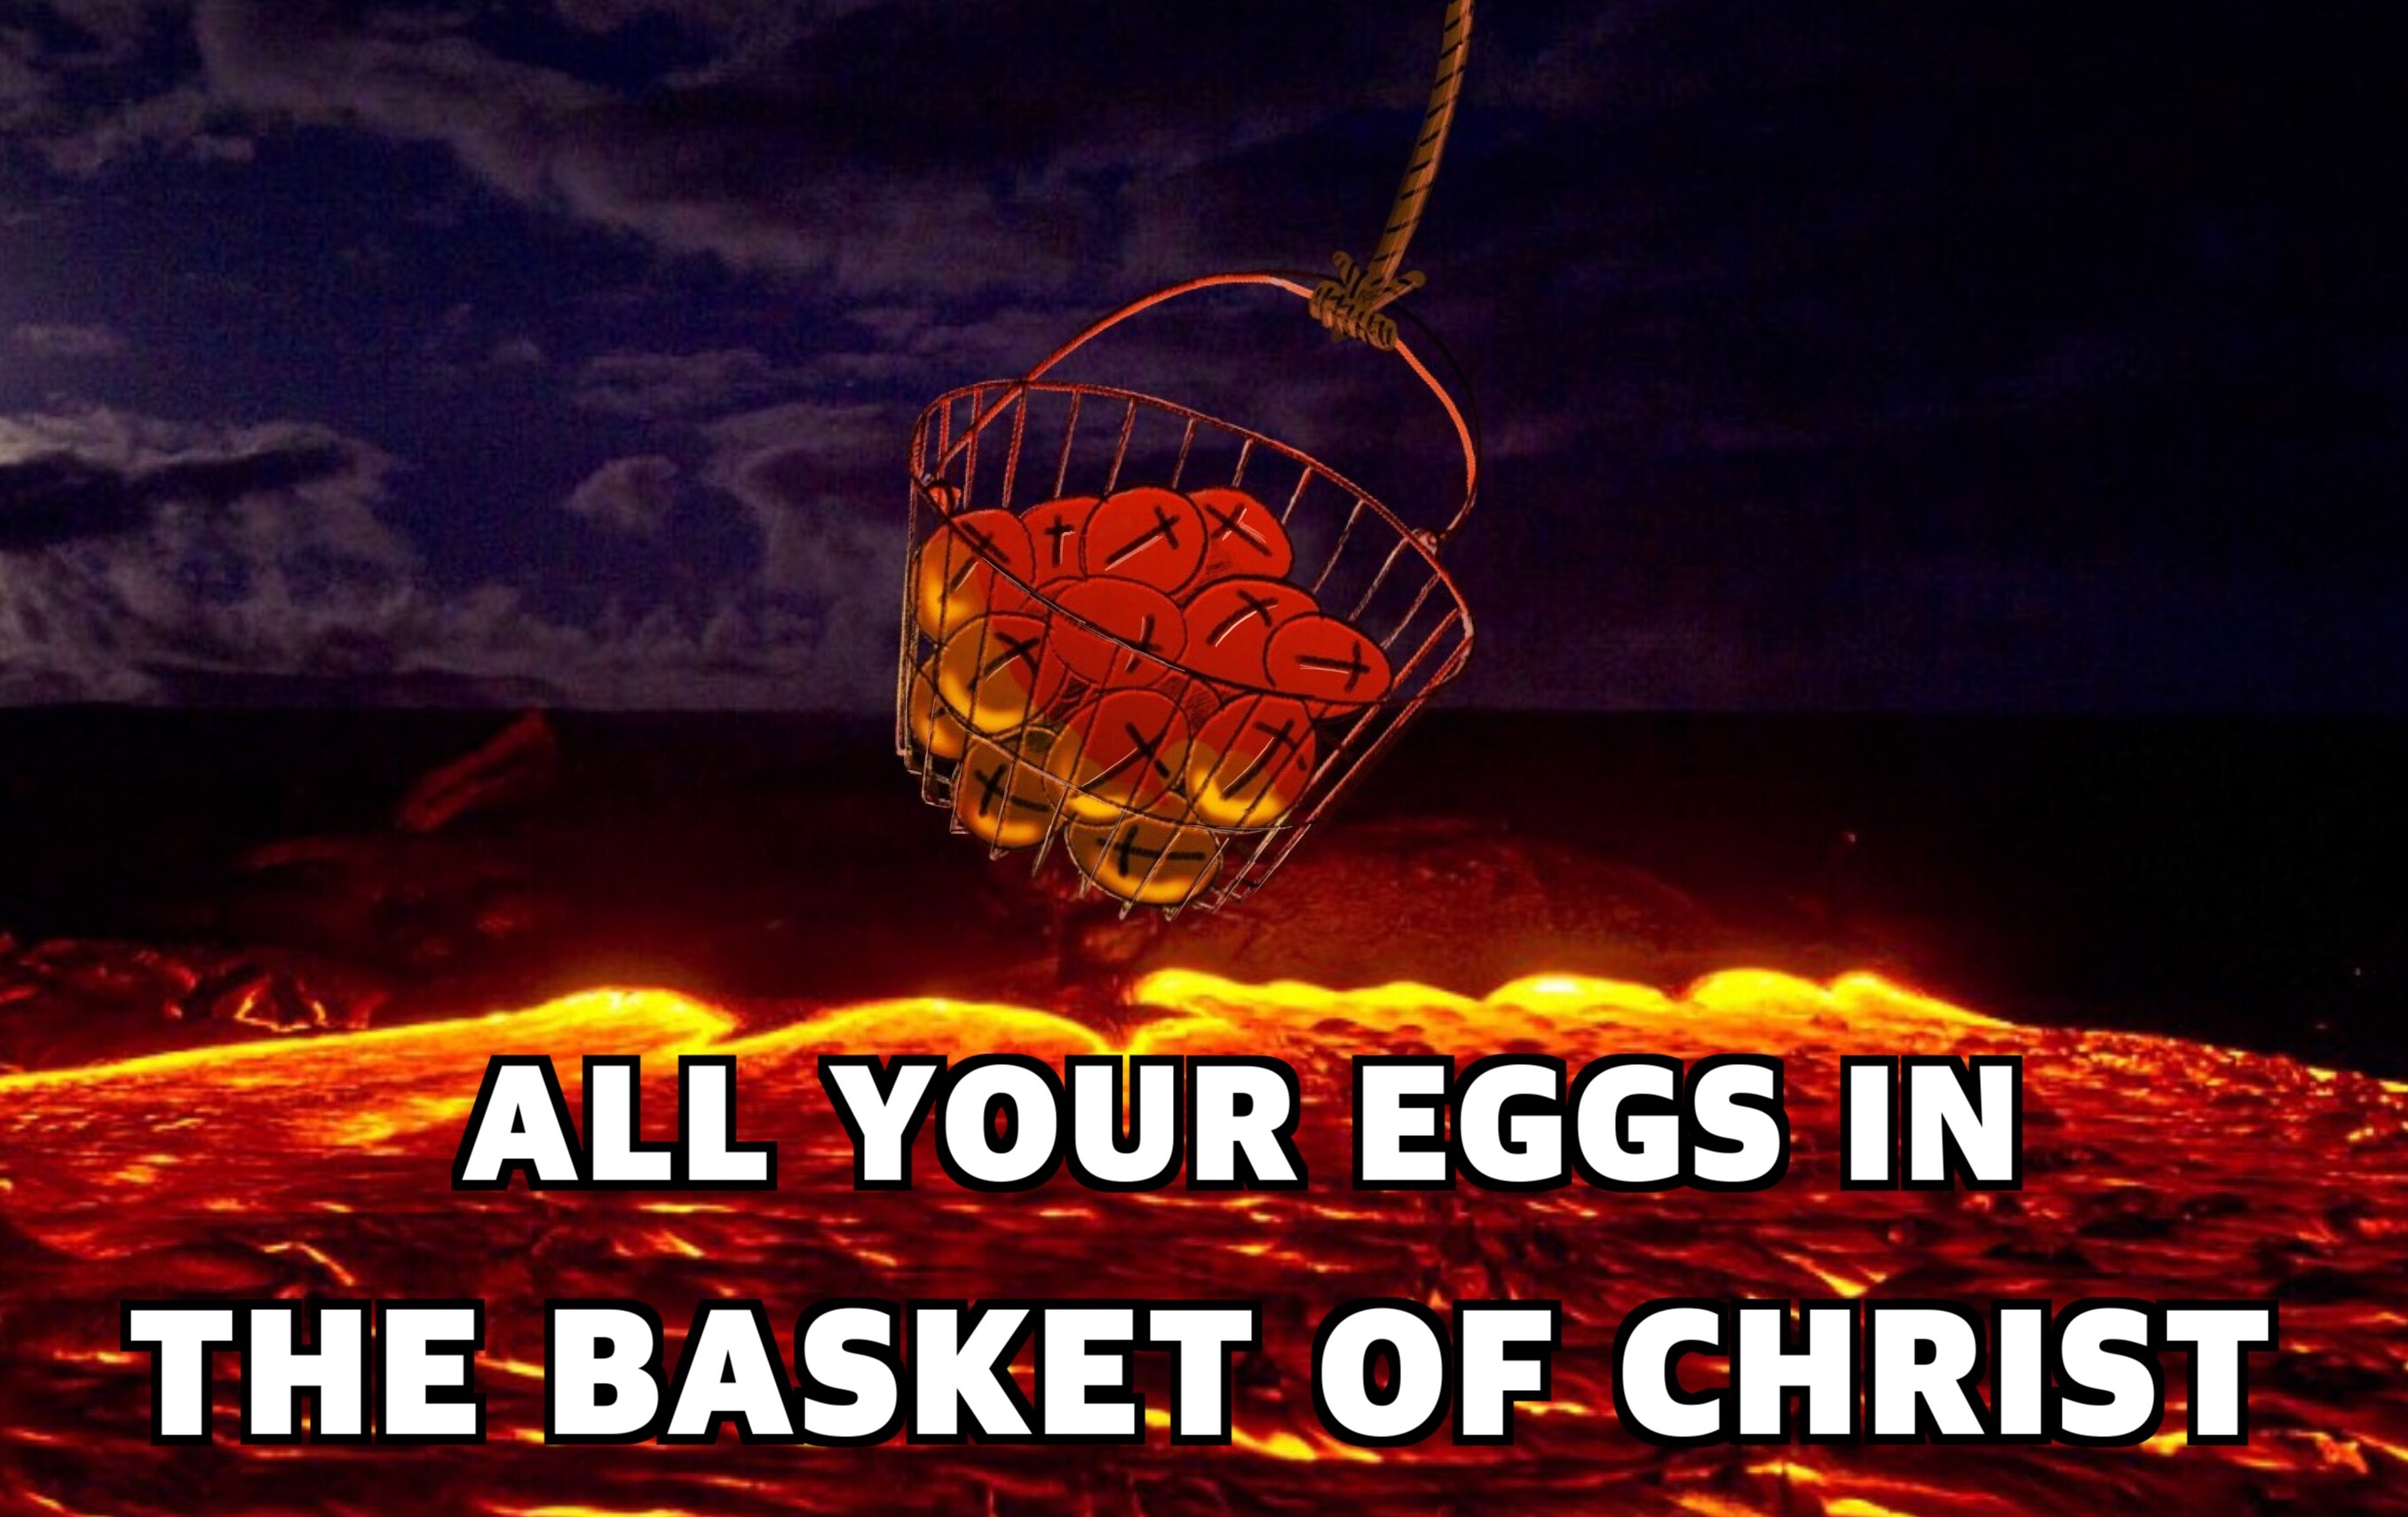 A basket of eggs with crosses on them suspended over a lava field